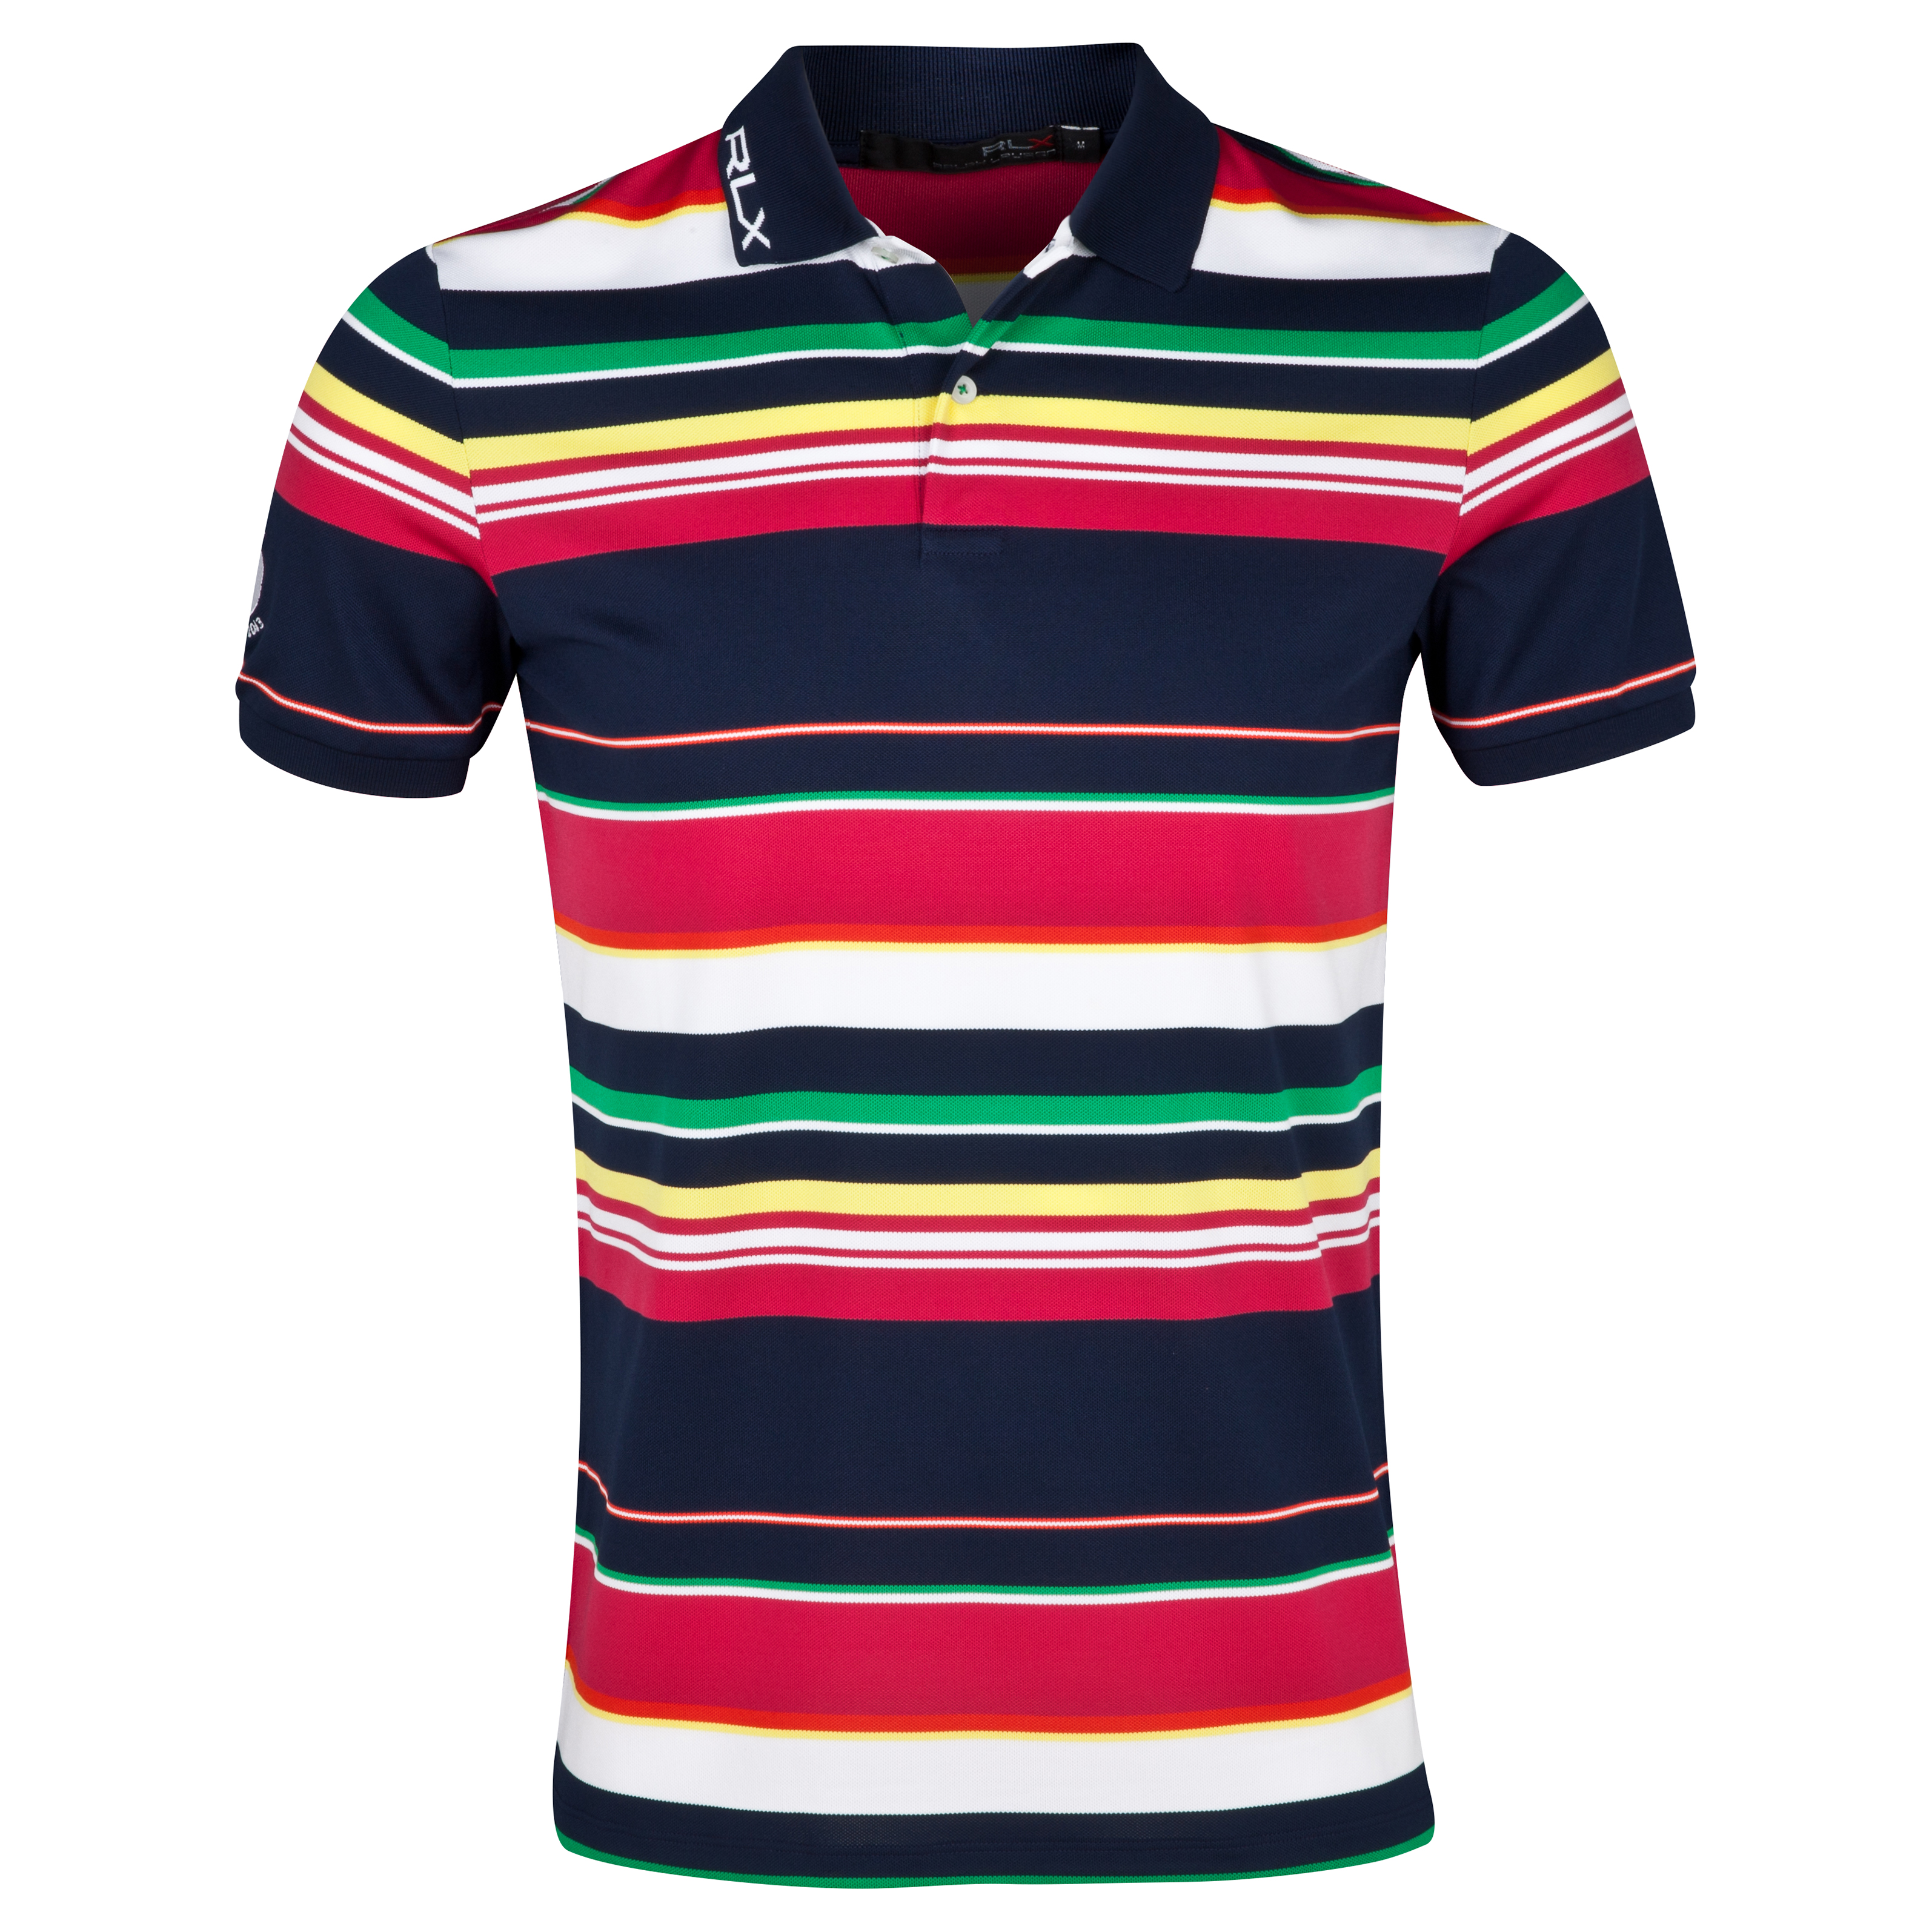 Open Golf The Open Championship 2013 Muirfield Ralph Lauren RLX Polo Navy